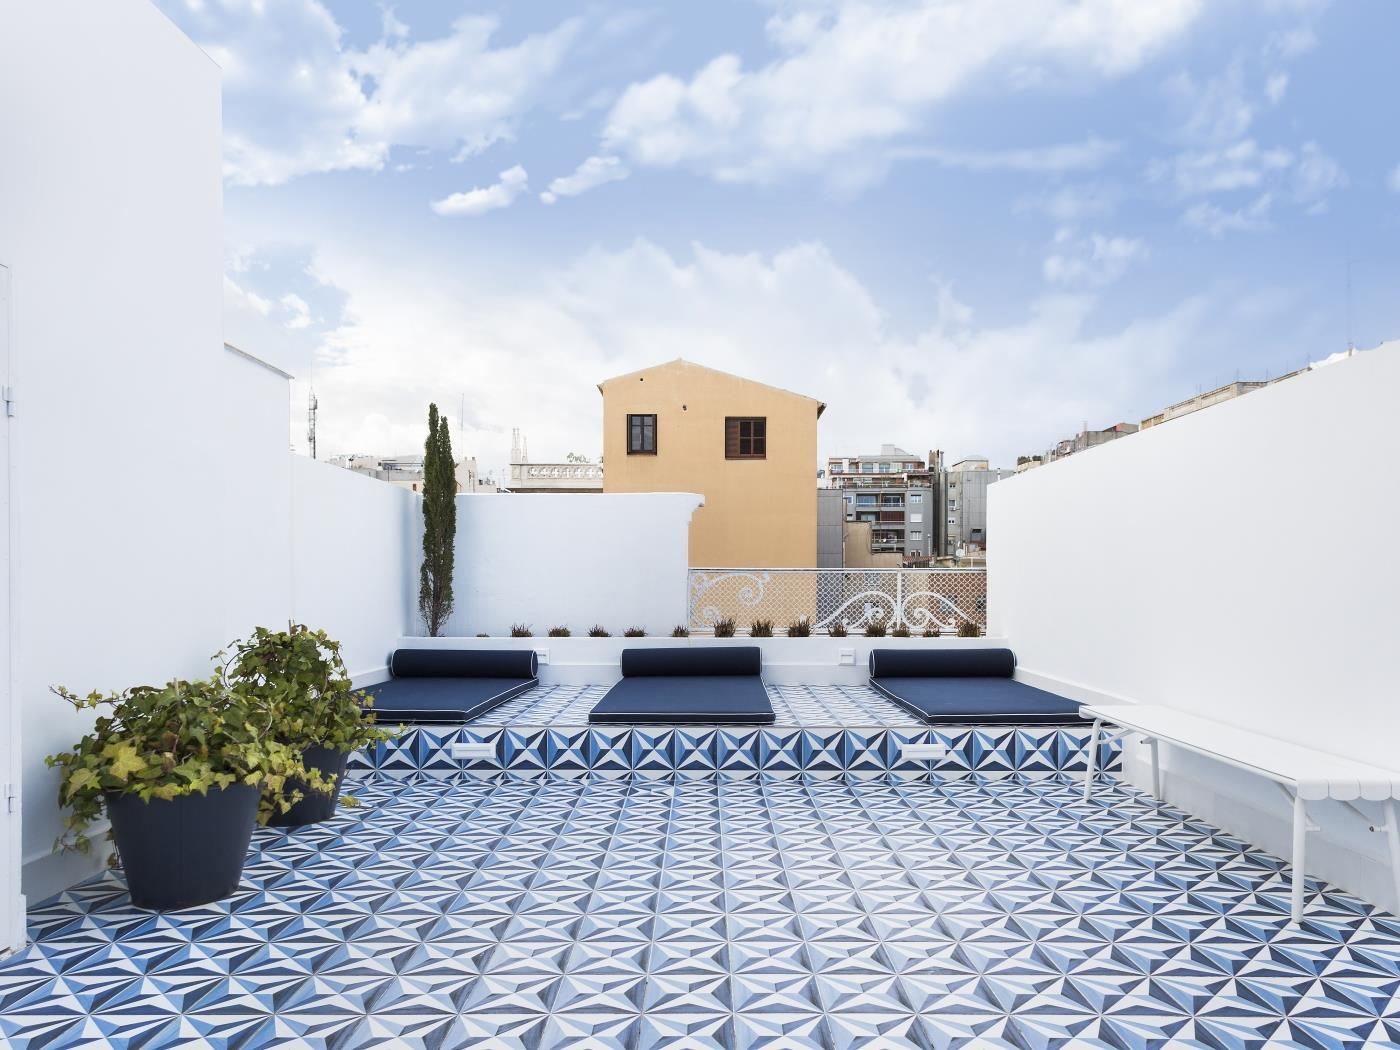 Spacious 2BR flat in central Barcelona with private balcony and shared terrace - My Space Barcelona Apartamentos